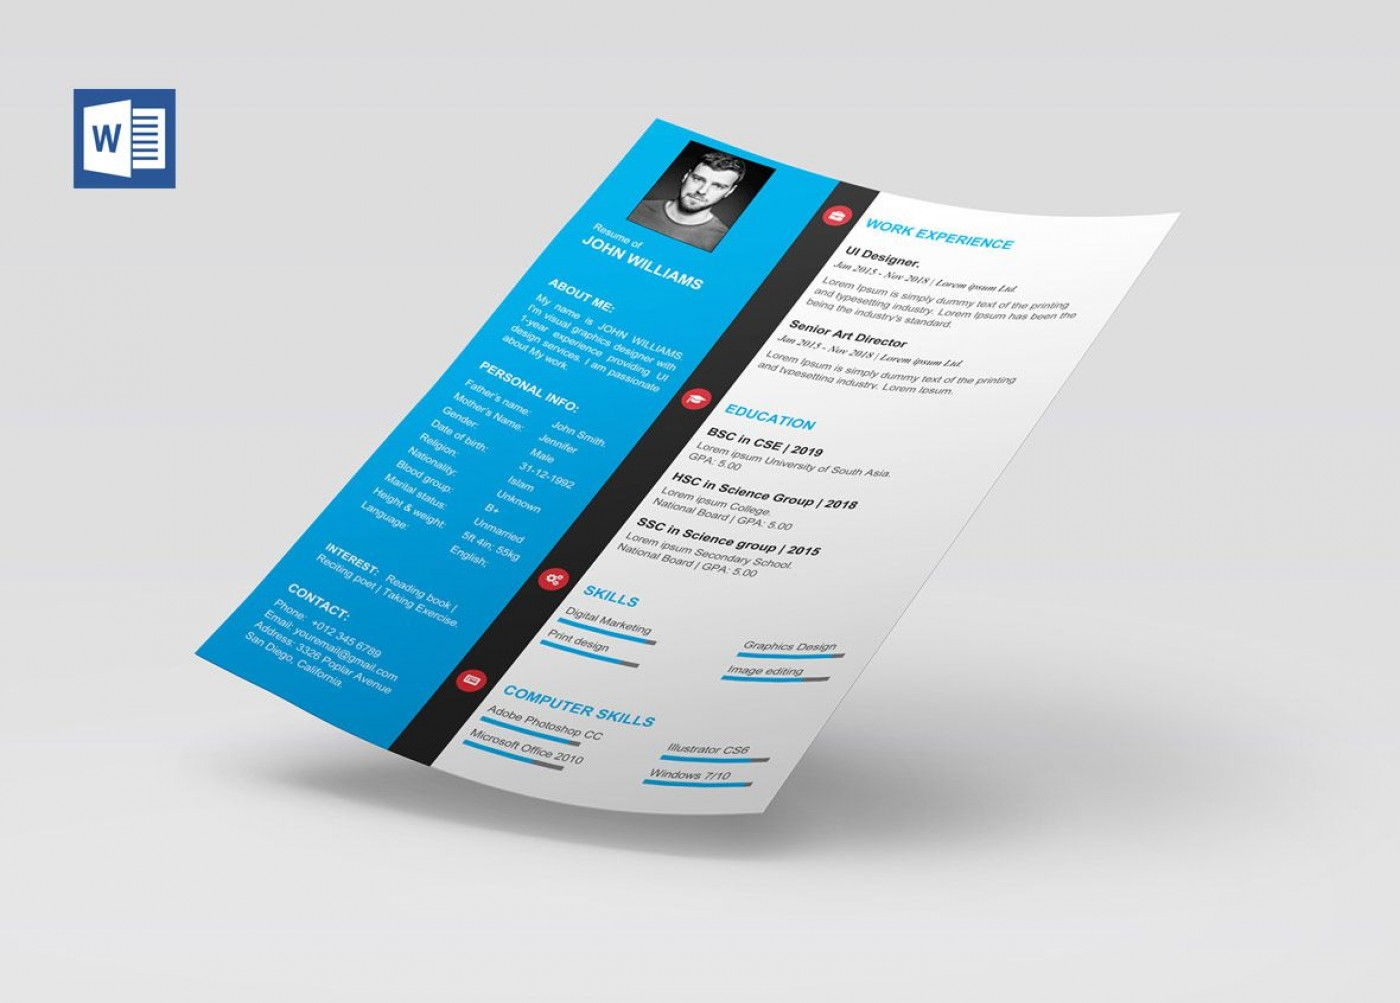 005 Magnificent Resume Template Word Free Idea  Download 2020 Doc1400